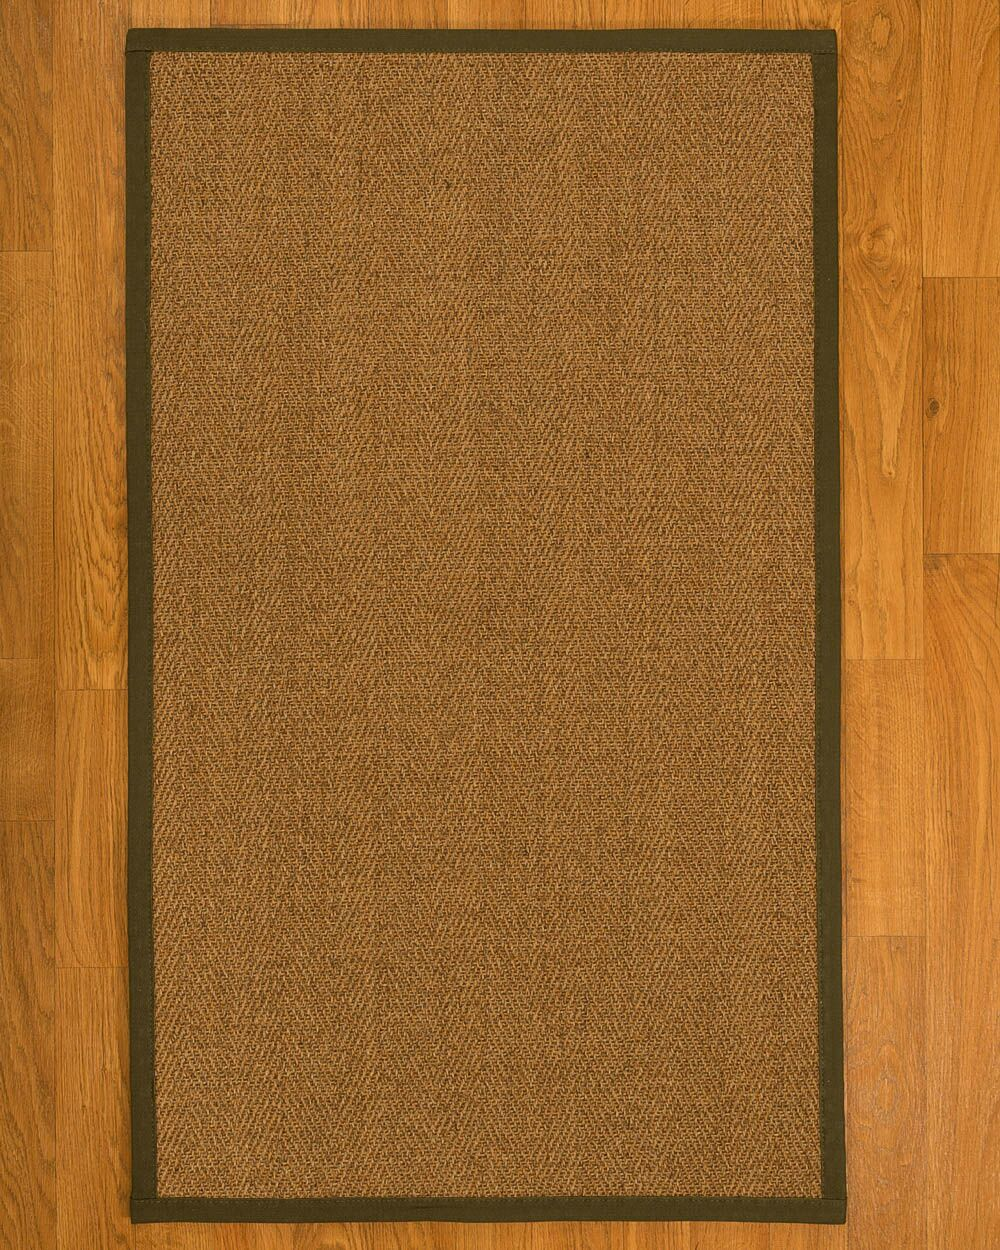 Asmund Border Hand-Woven Brown/Malt Area Rug Rug Size: Rectangle 6' x 9', Rug Pad Included: Yes